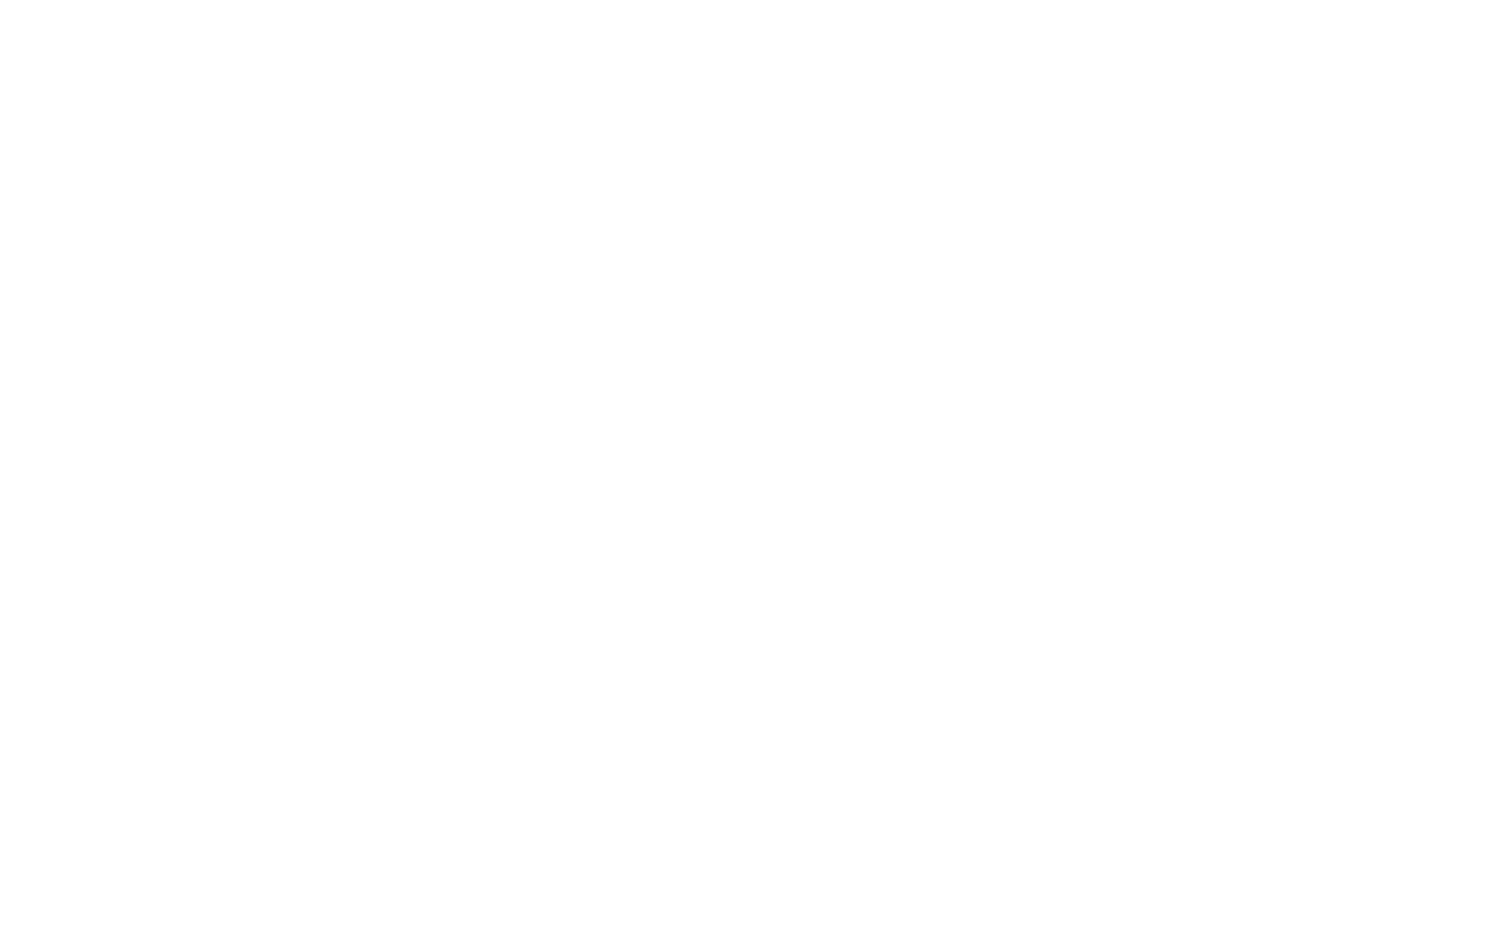 Zach Lockwood